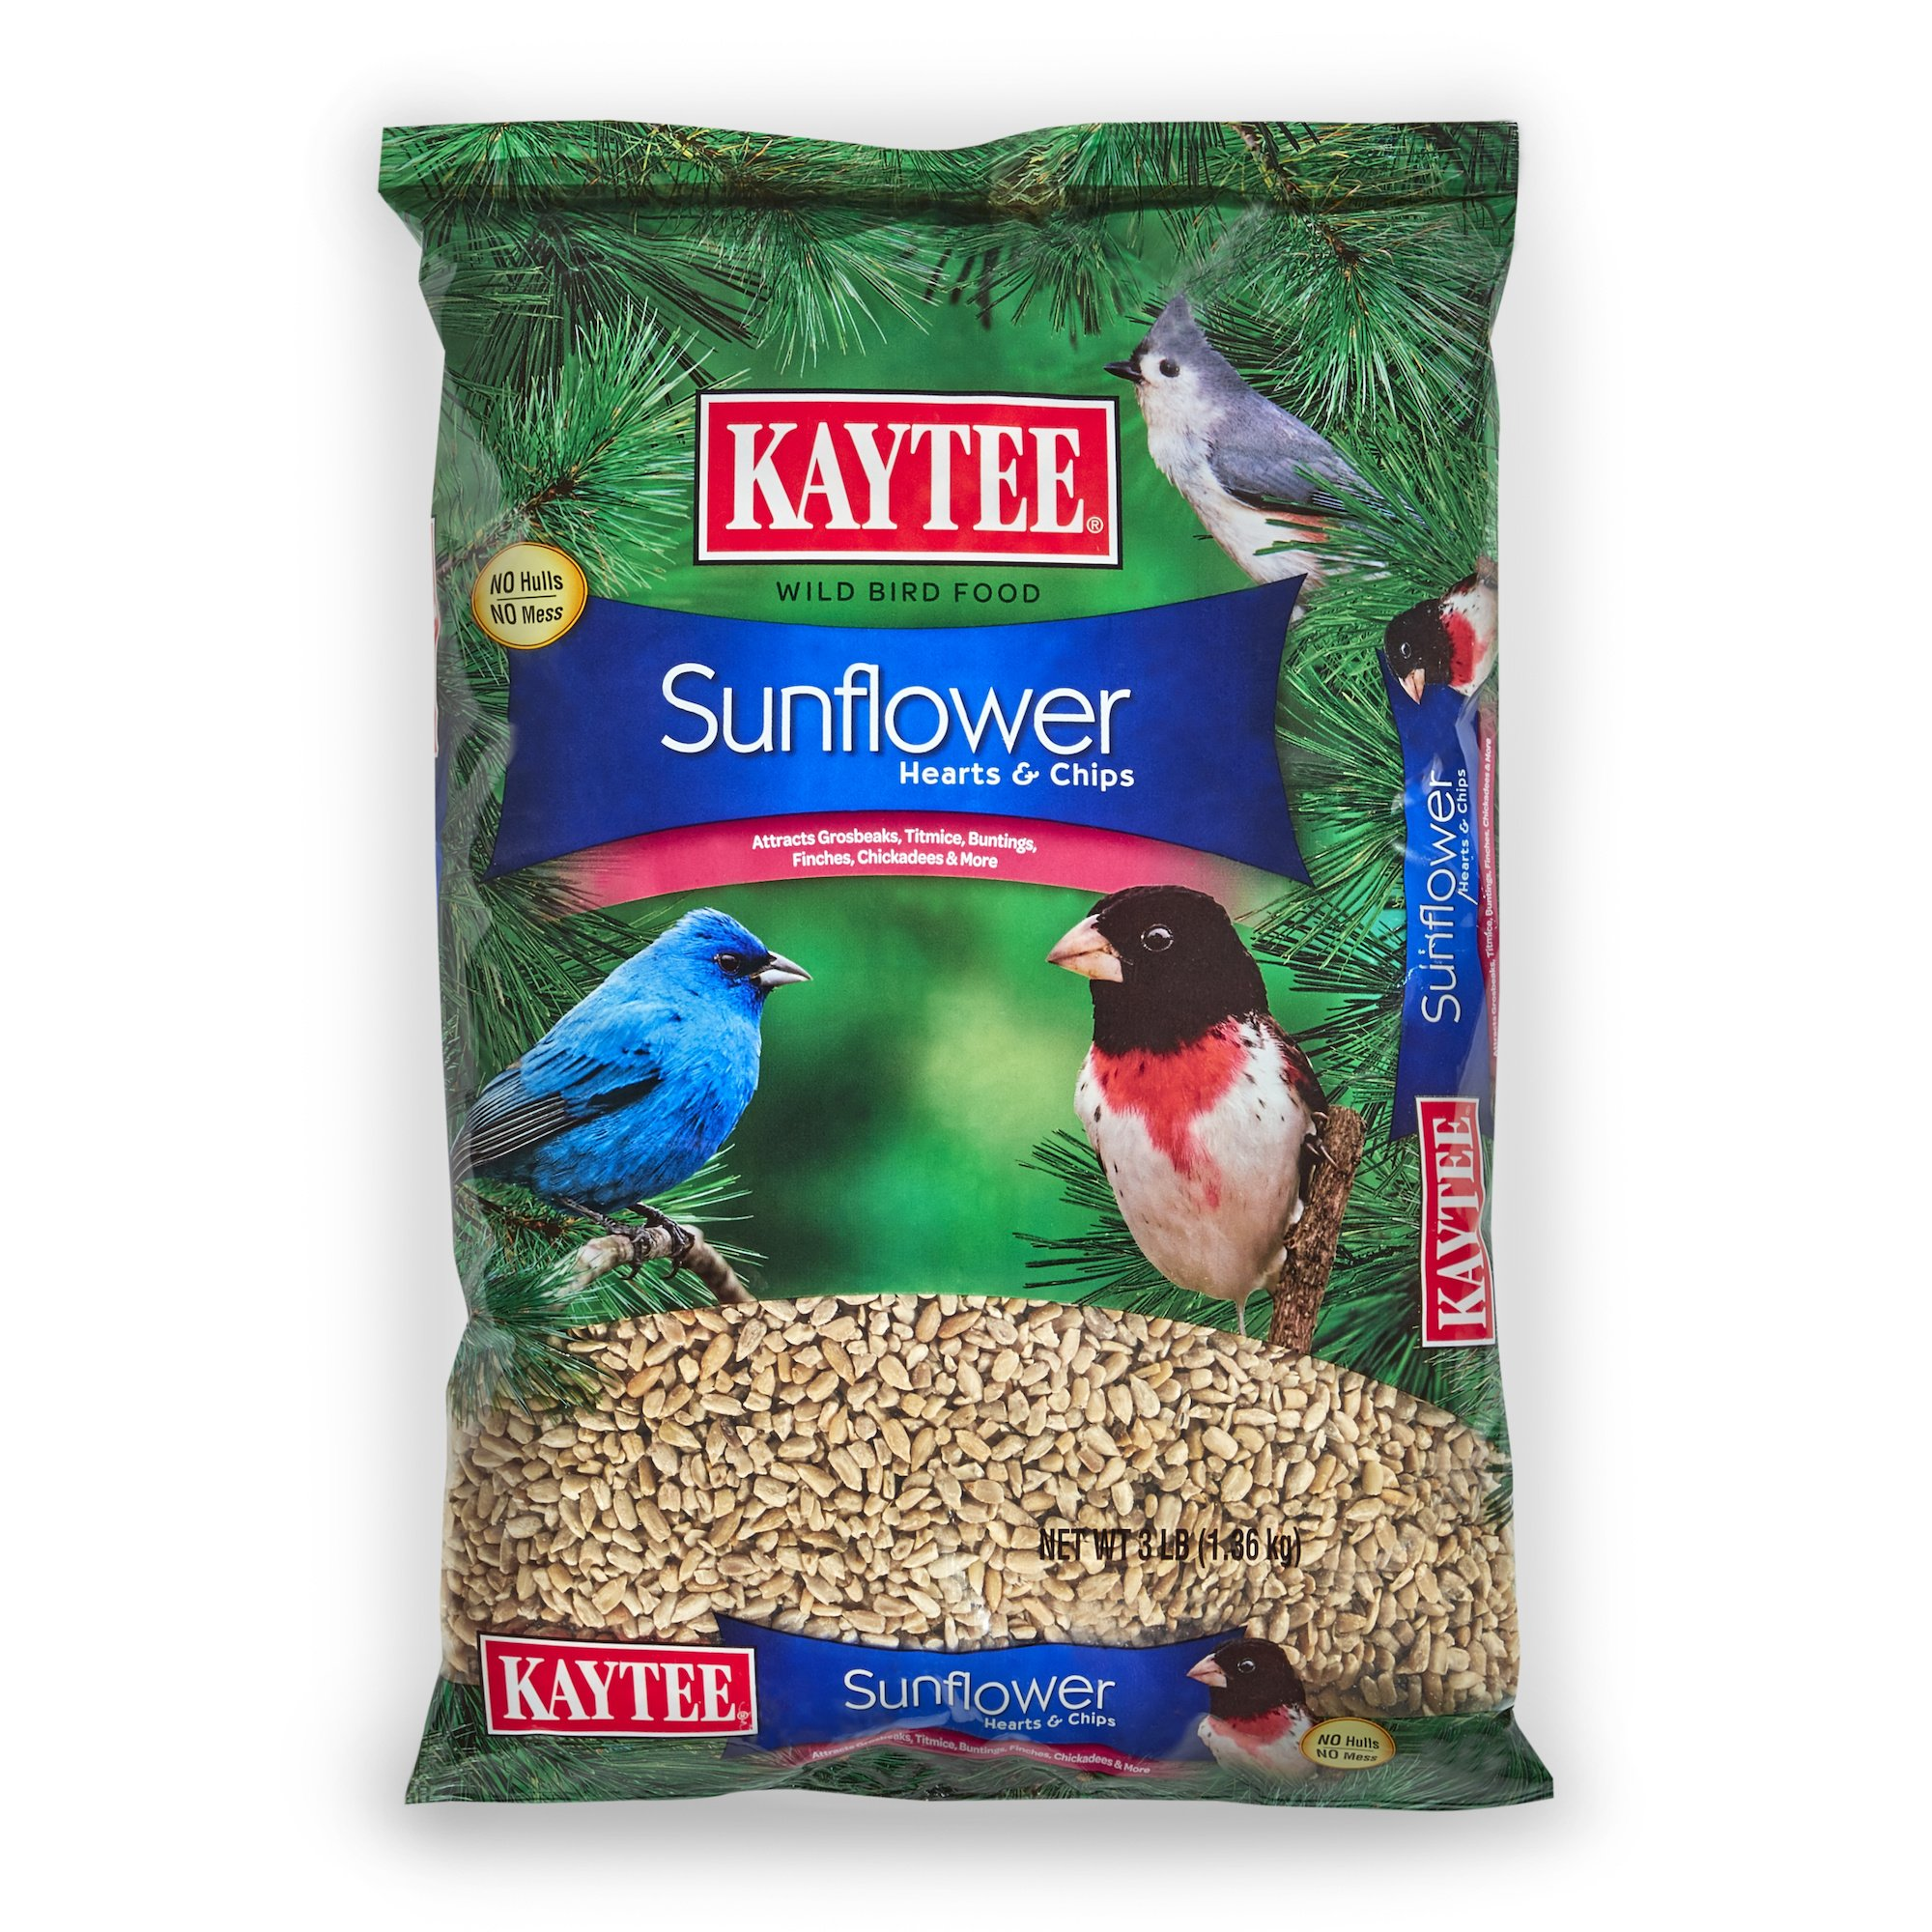 Kaytee Sunflower Hearts and Chips Seed, 3-Pound by Kaytee